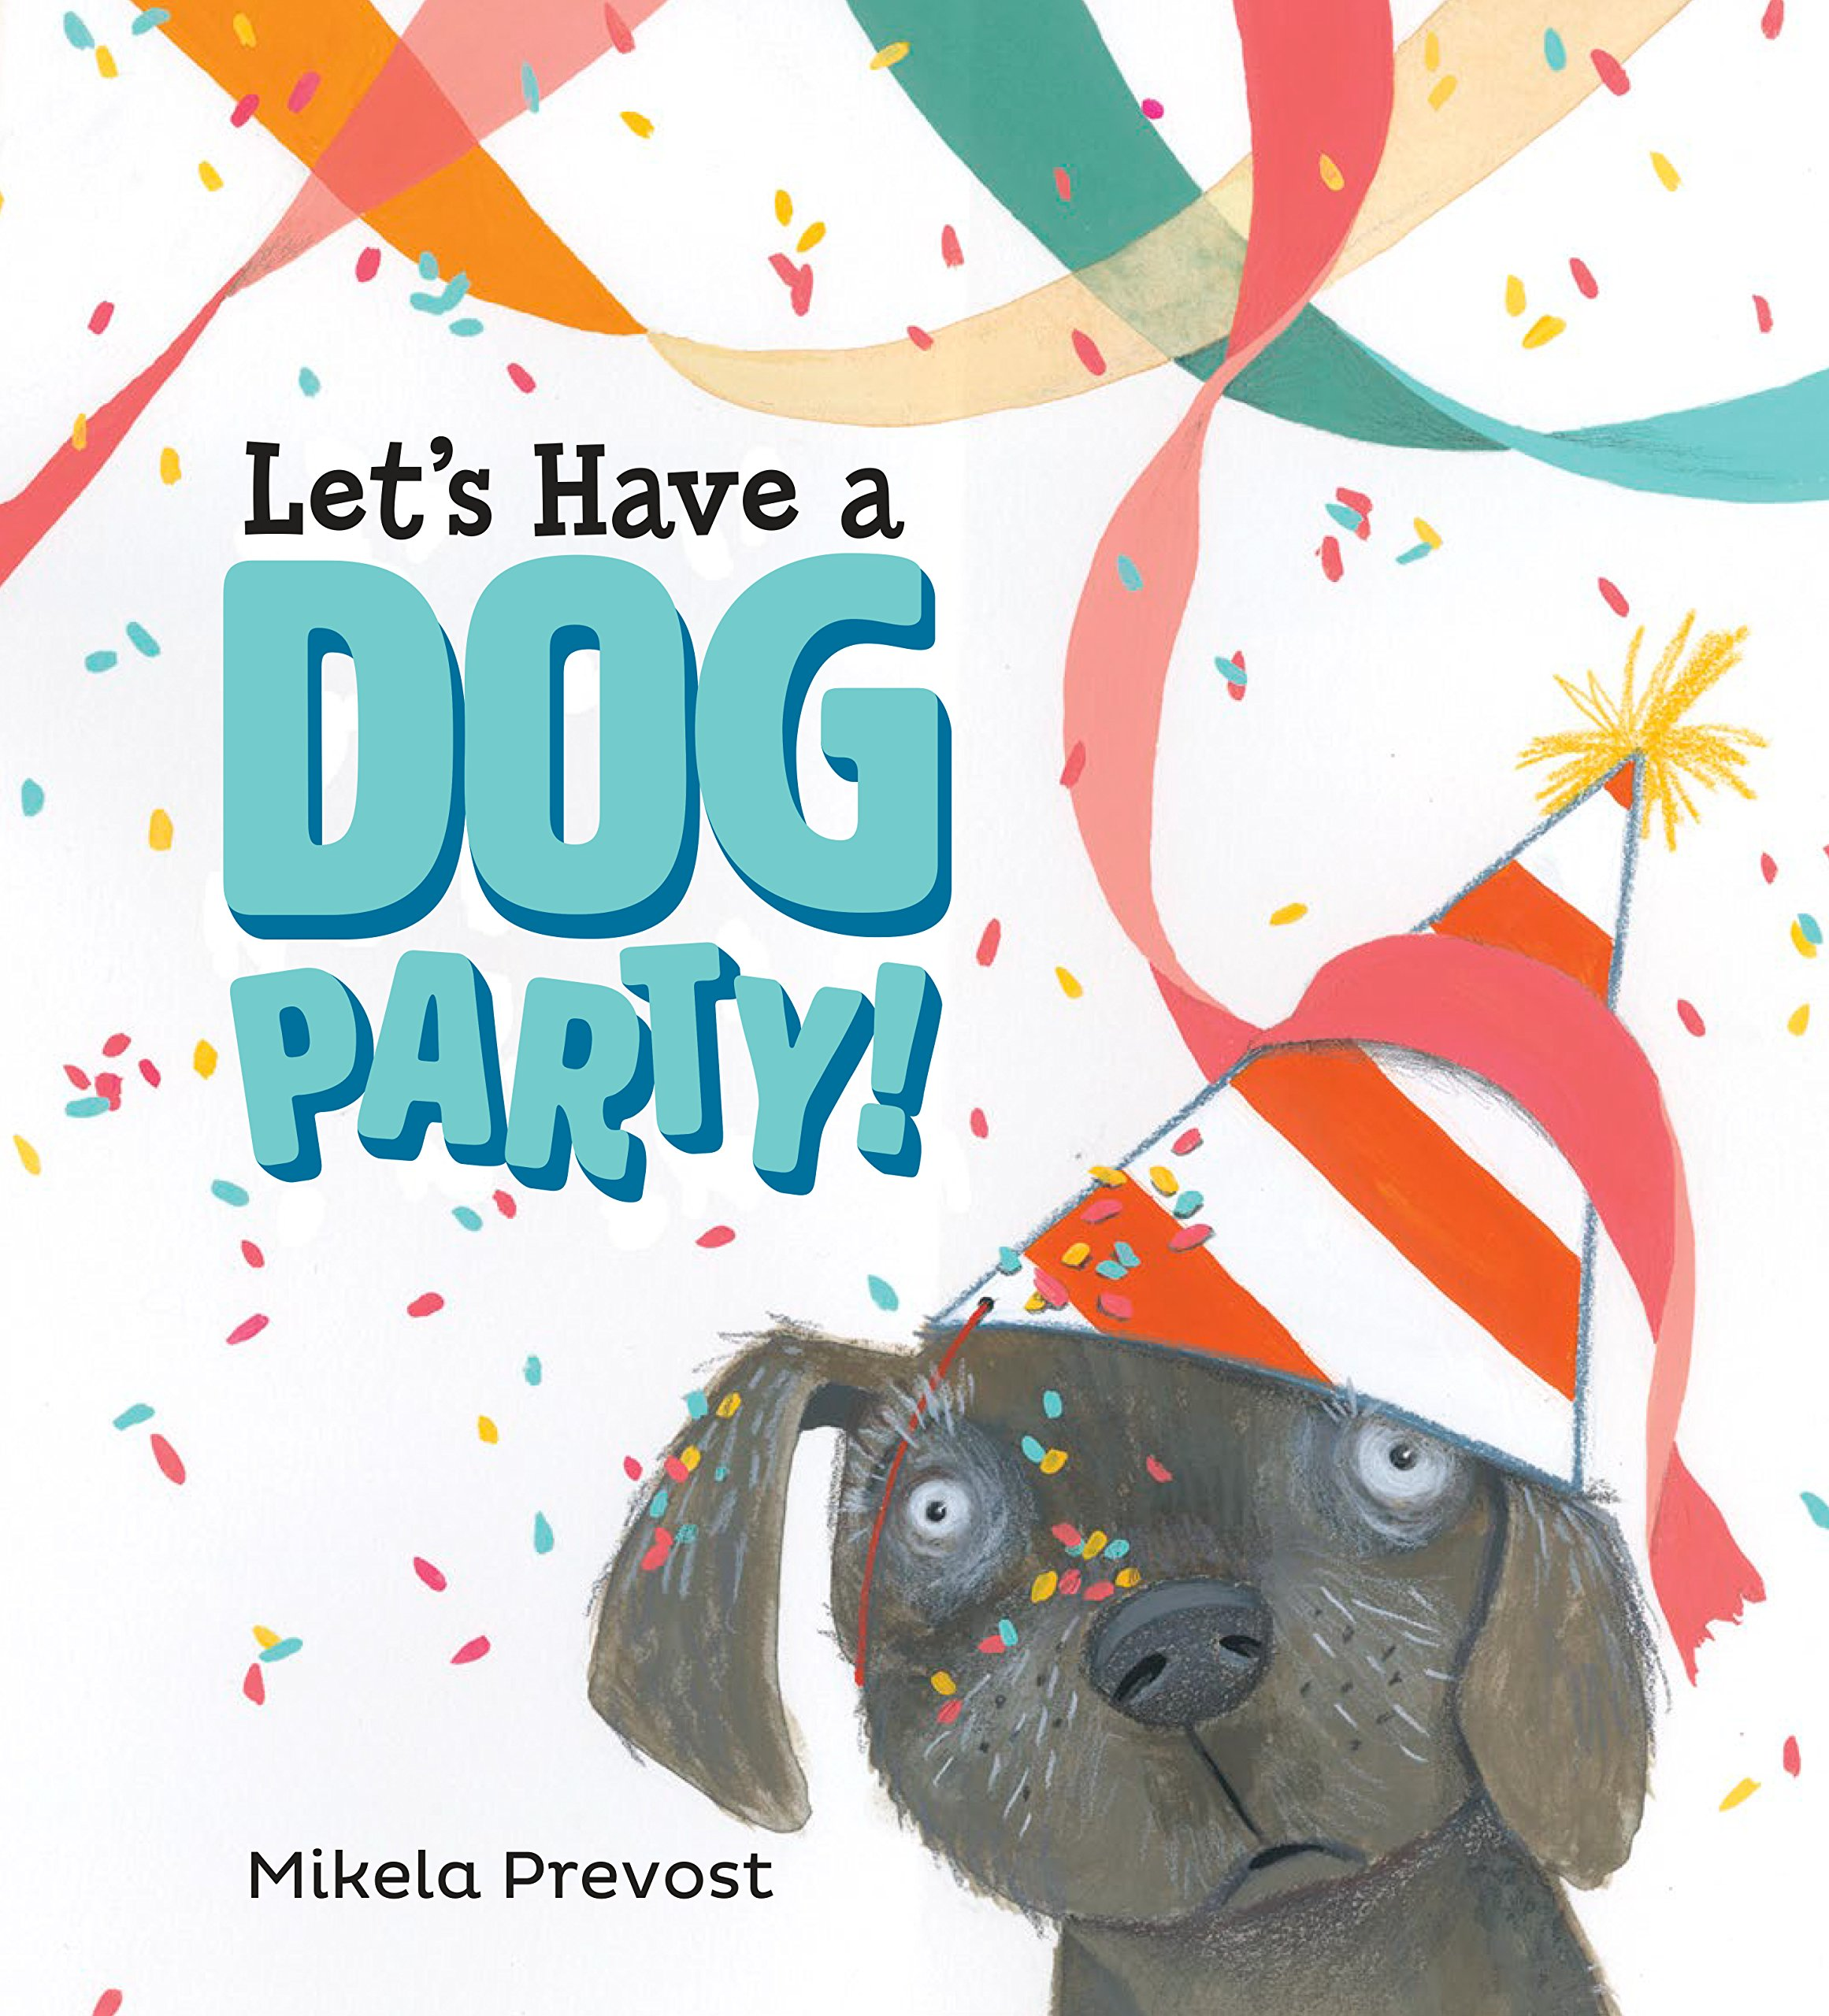 Let's Have A Dog Party! Author: Mikela Prevost Publisher: Viking/Penguin Date of Publication: March 19, 2019